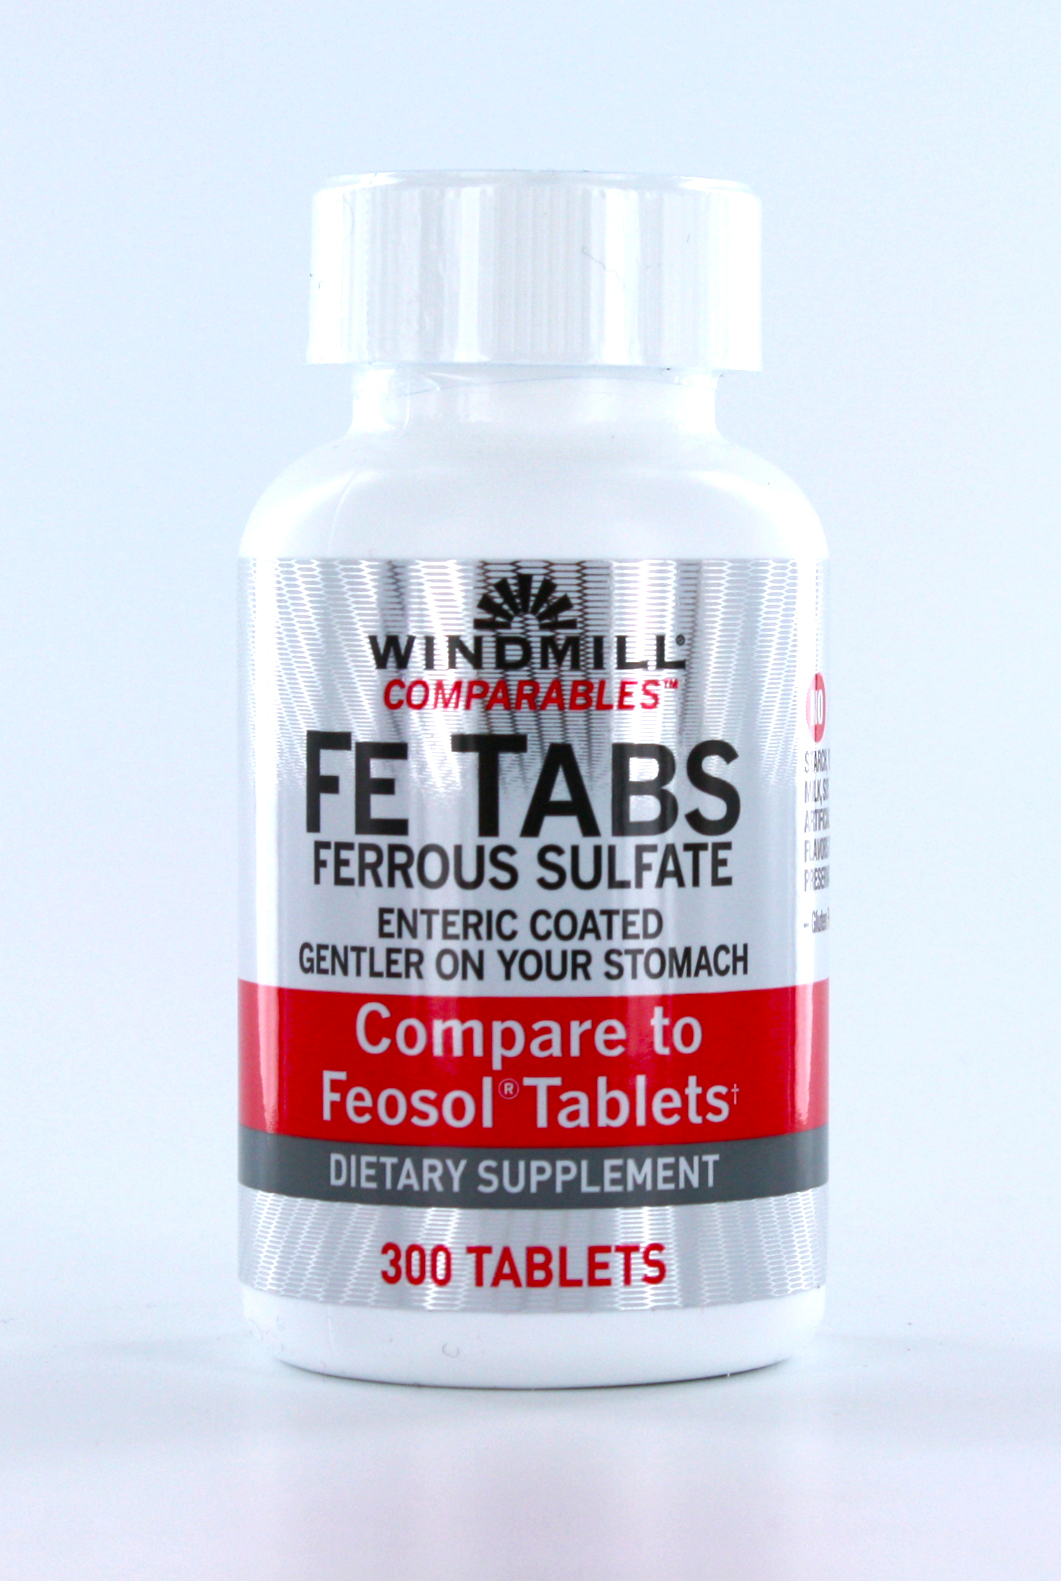 Windmill Comparables Fe Tabs Ferrous Sulfate - 300 Tablets